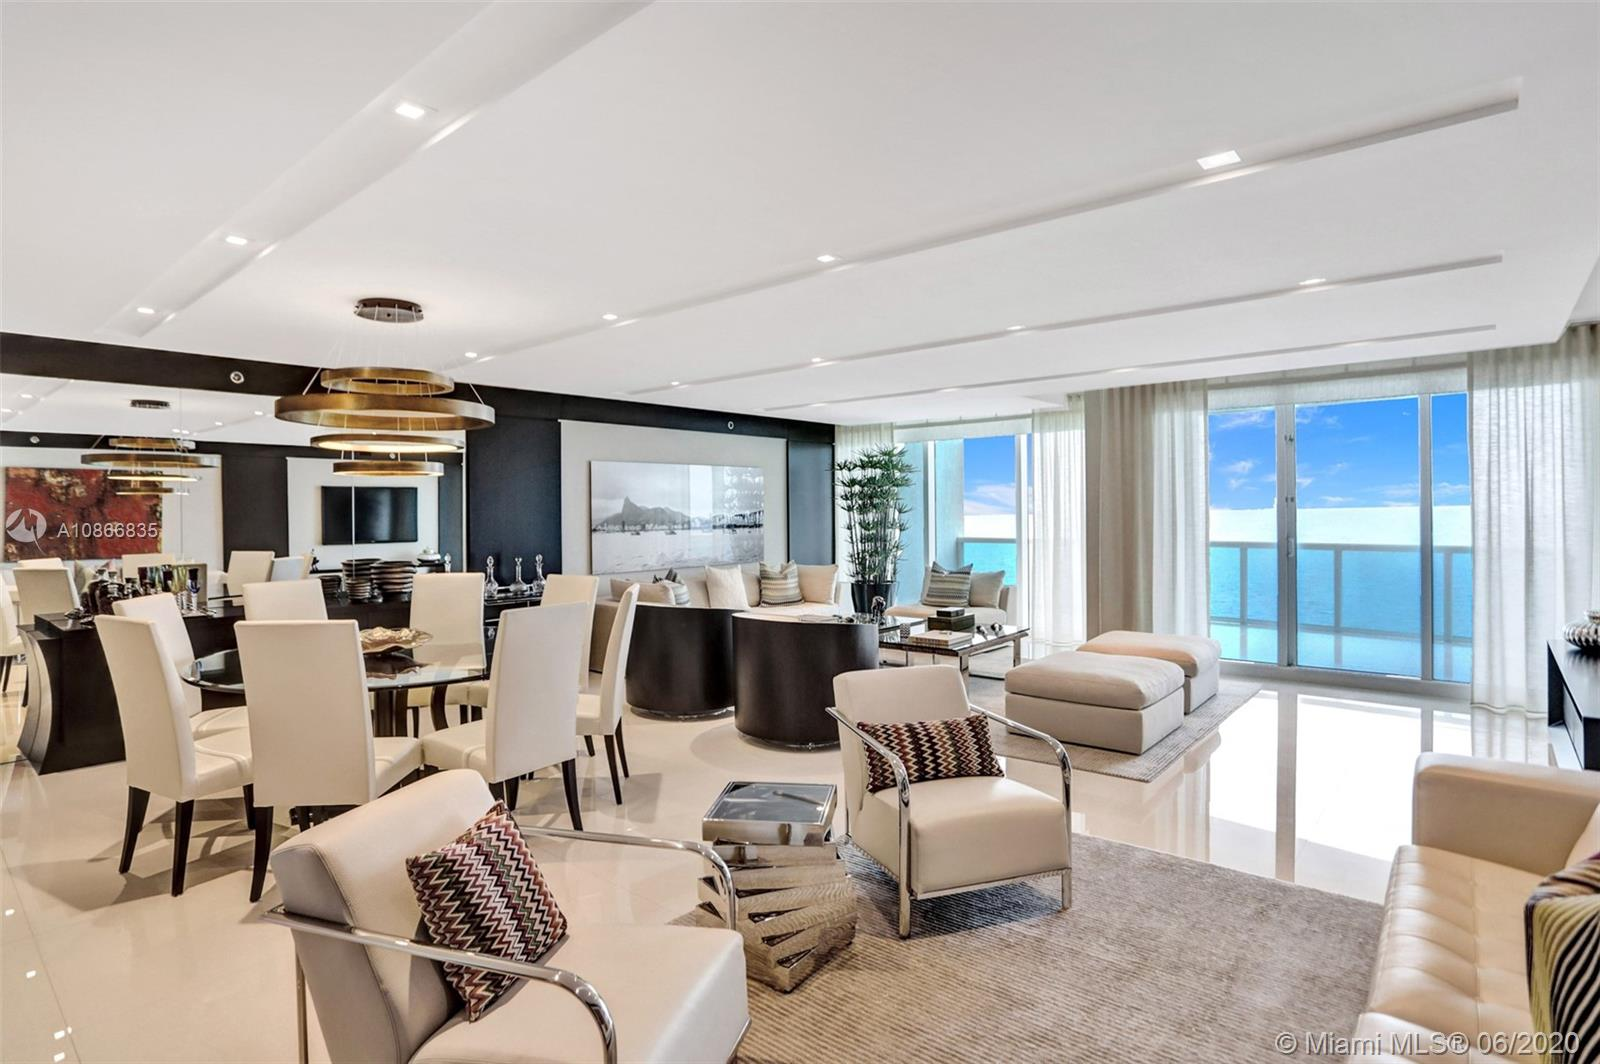 Turnkey apartment at the Luxurious Trump Hollywood. Panoramic direct ocean and intracoastal view. Flow through floor plan with breathtaking views in every direction. 3B 3.5BA, family room, Gourmet European kitchen w/high quality Miele & Sub-Zero appliances. Private elevator entrance, floor to ceiling glass windows & spacious terrace. Professionally designed & furnished. Unsurpassed amenities incl. Breakfast room, Wine+Cigar Lounges, Fitness Center, Spa, Massage rooms, Theater, Party room, Caterer's Kitchen, pool+beach service, 24 hr security, valet. Stunning!